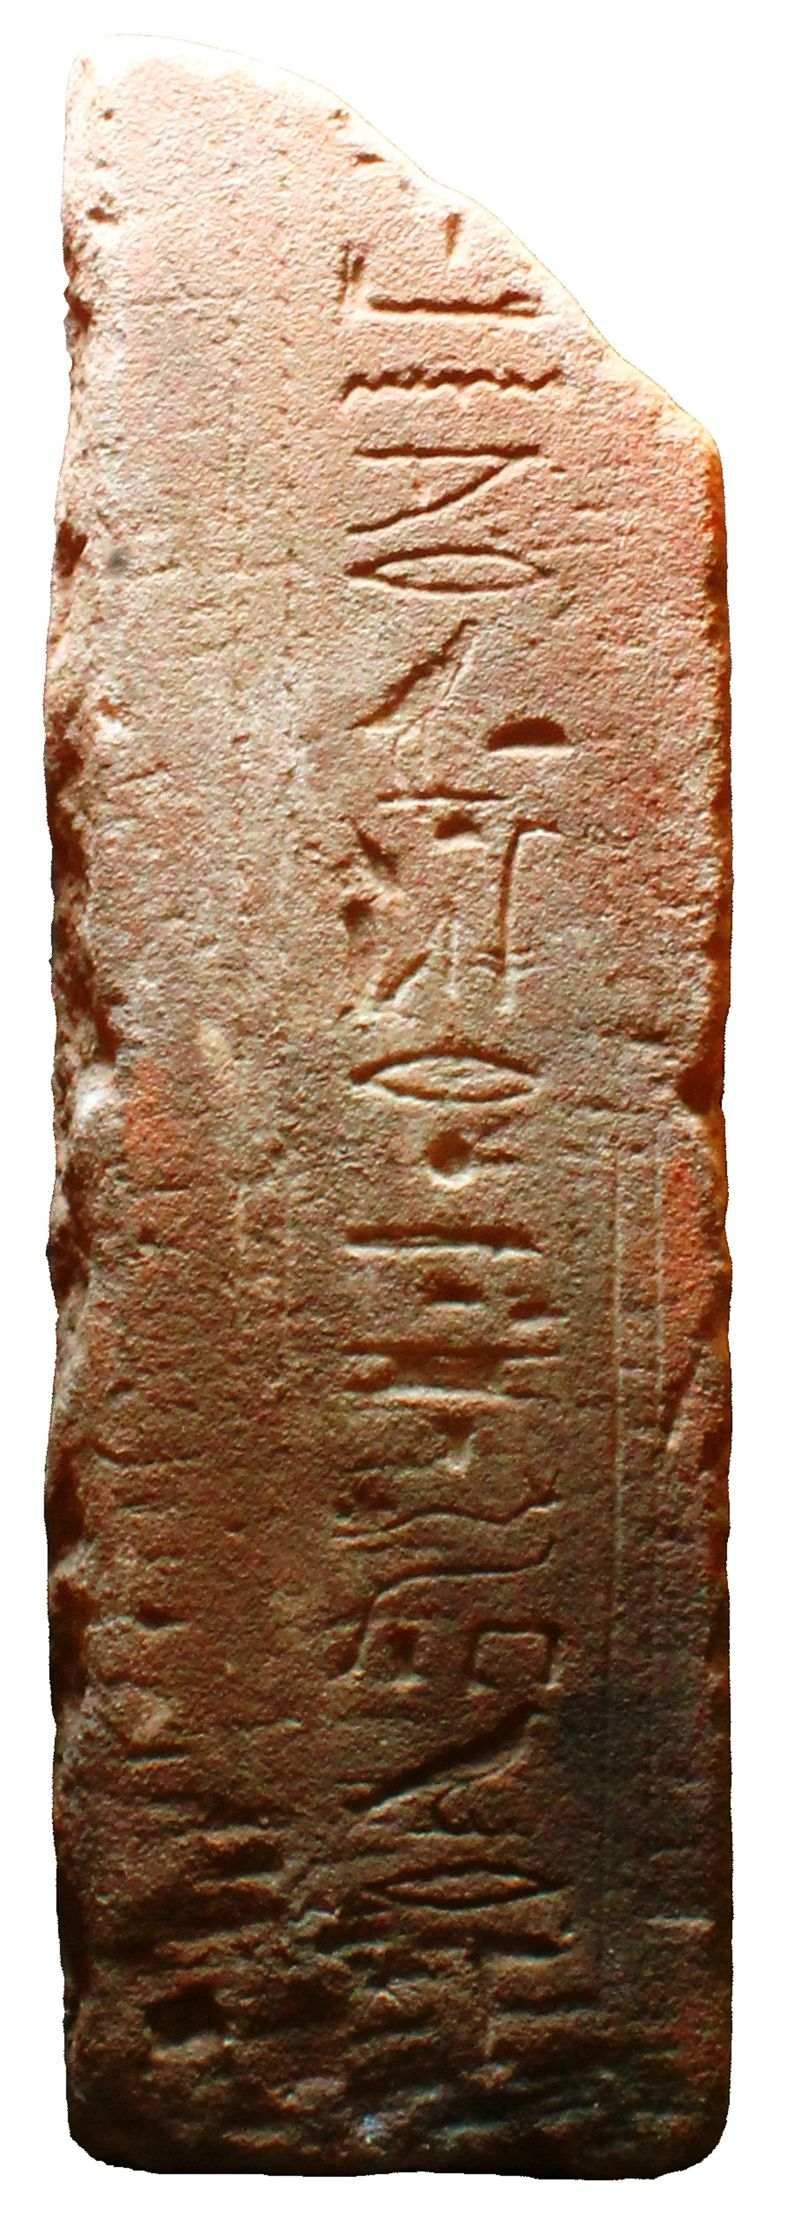 Image for: Fragment of a doorjamb